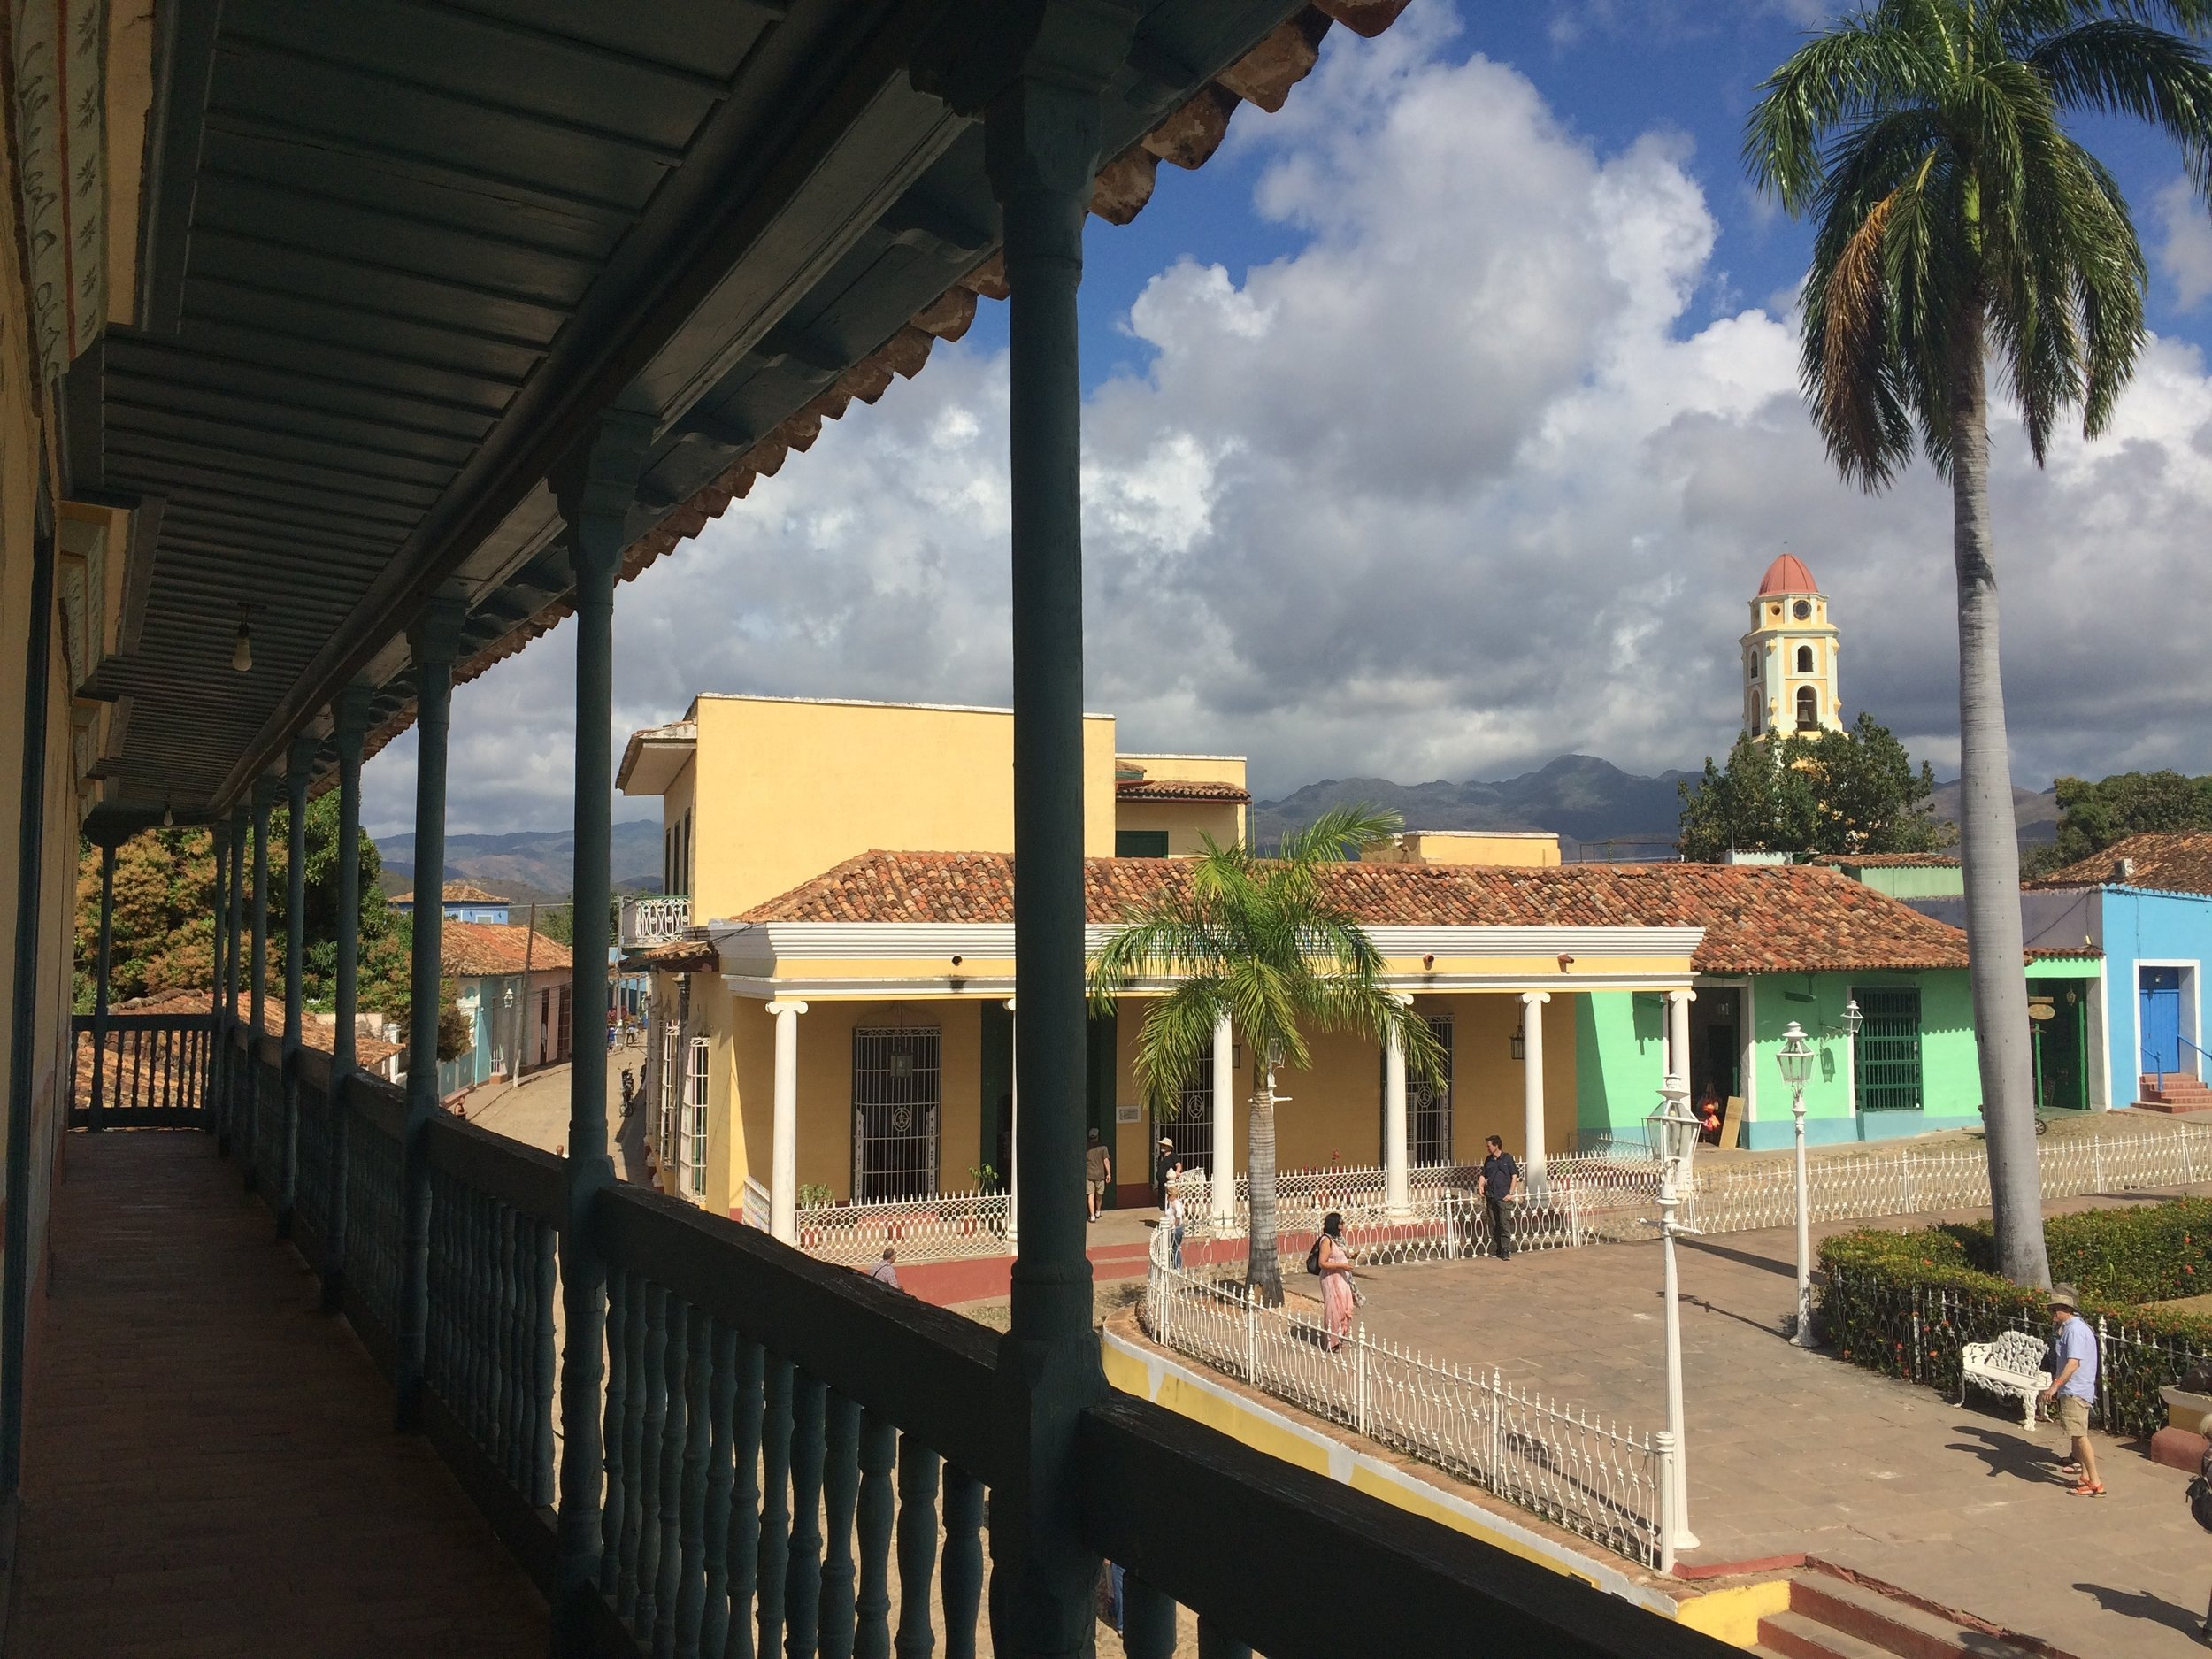 The view from the museum's 2nd floor in Plaza Mayor in the historic center of Trinidad de Cuba